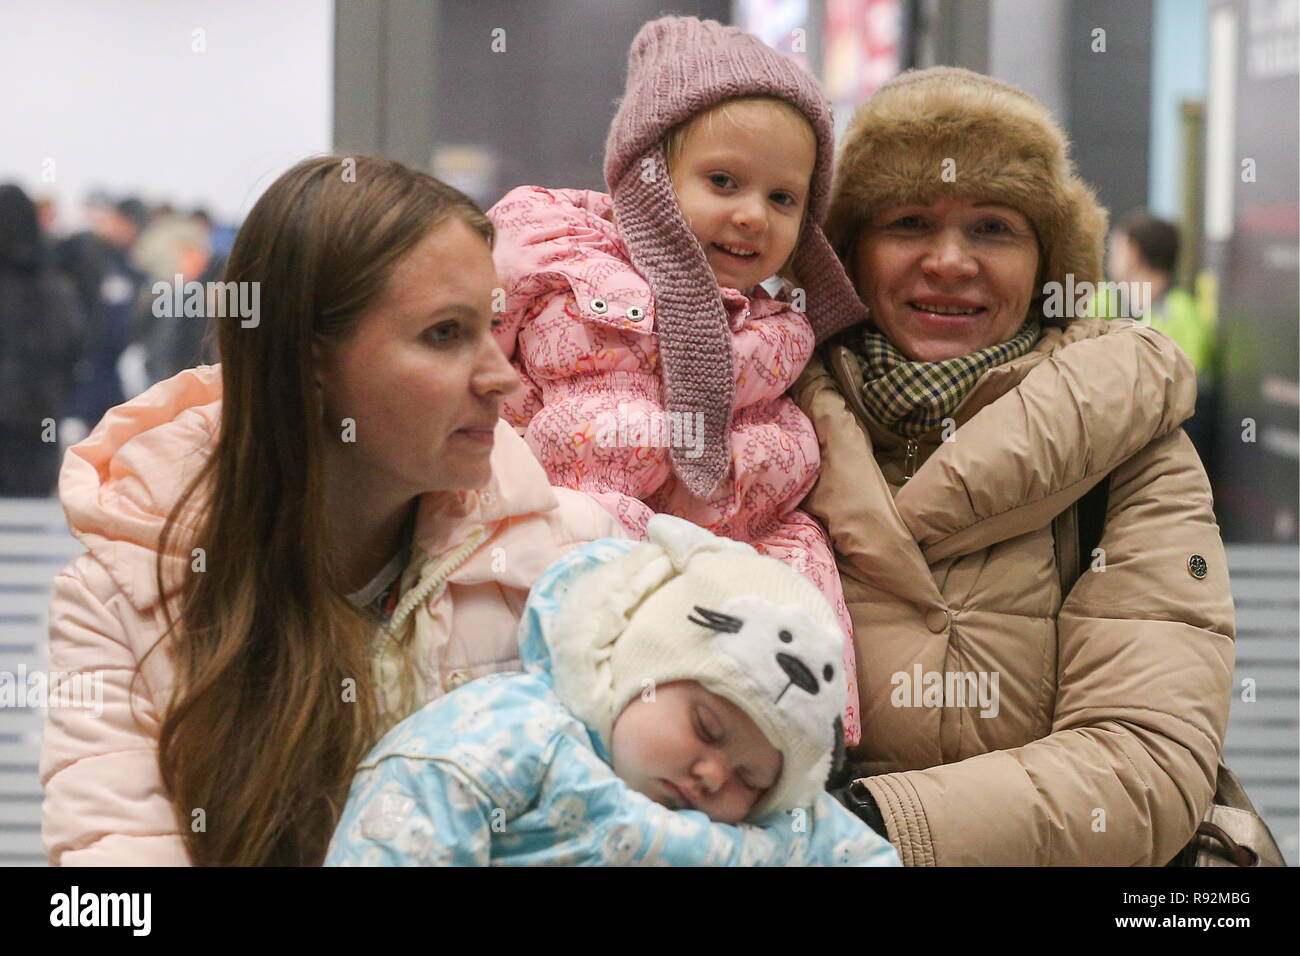 Kazan, Russia. 18th Dec, 2018. KAZAN, RUSSIA - DECEMBER 18, 2018: Russian tourists of the Pearl River tour operator at Kazan International Airport. A number of Russian tourists have been stranded on the Chinese Island of Hainan due to a debt situation between the Pearl River tour operator and the IrAero airline which suspended the flights for Pearl River; the tourists are currently being evacuated from China at the expense of Russia's Turpomoshch association. Yegor Aleyev/TASS Credit: ITAR-TASS News Agency/Alamy Live News - Stock Image